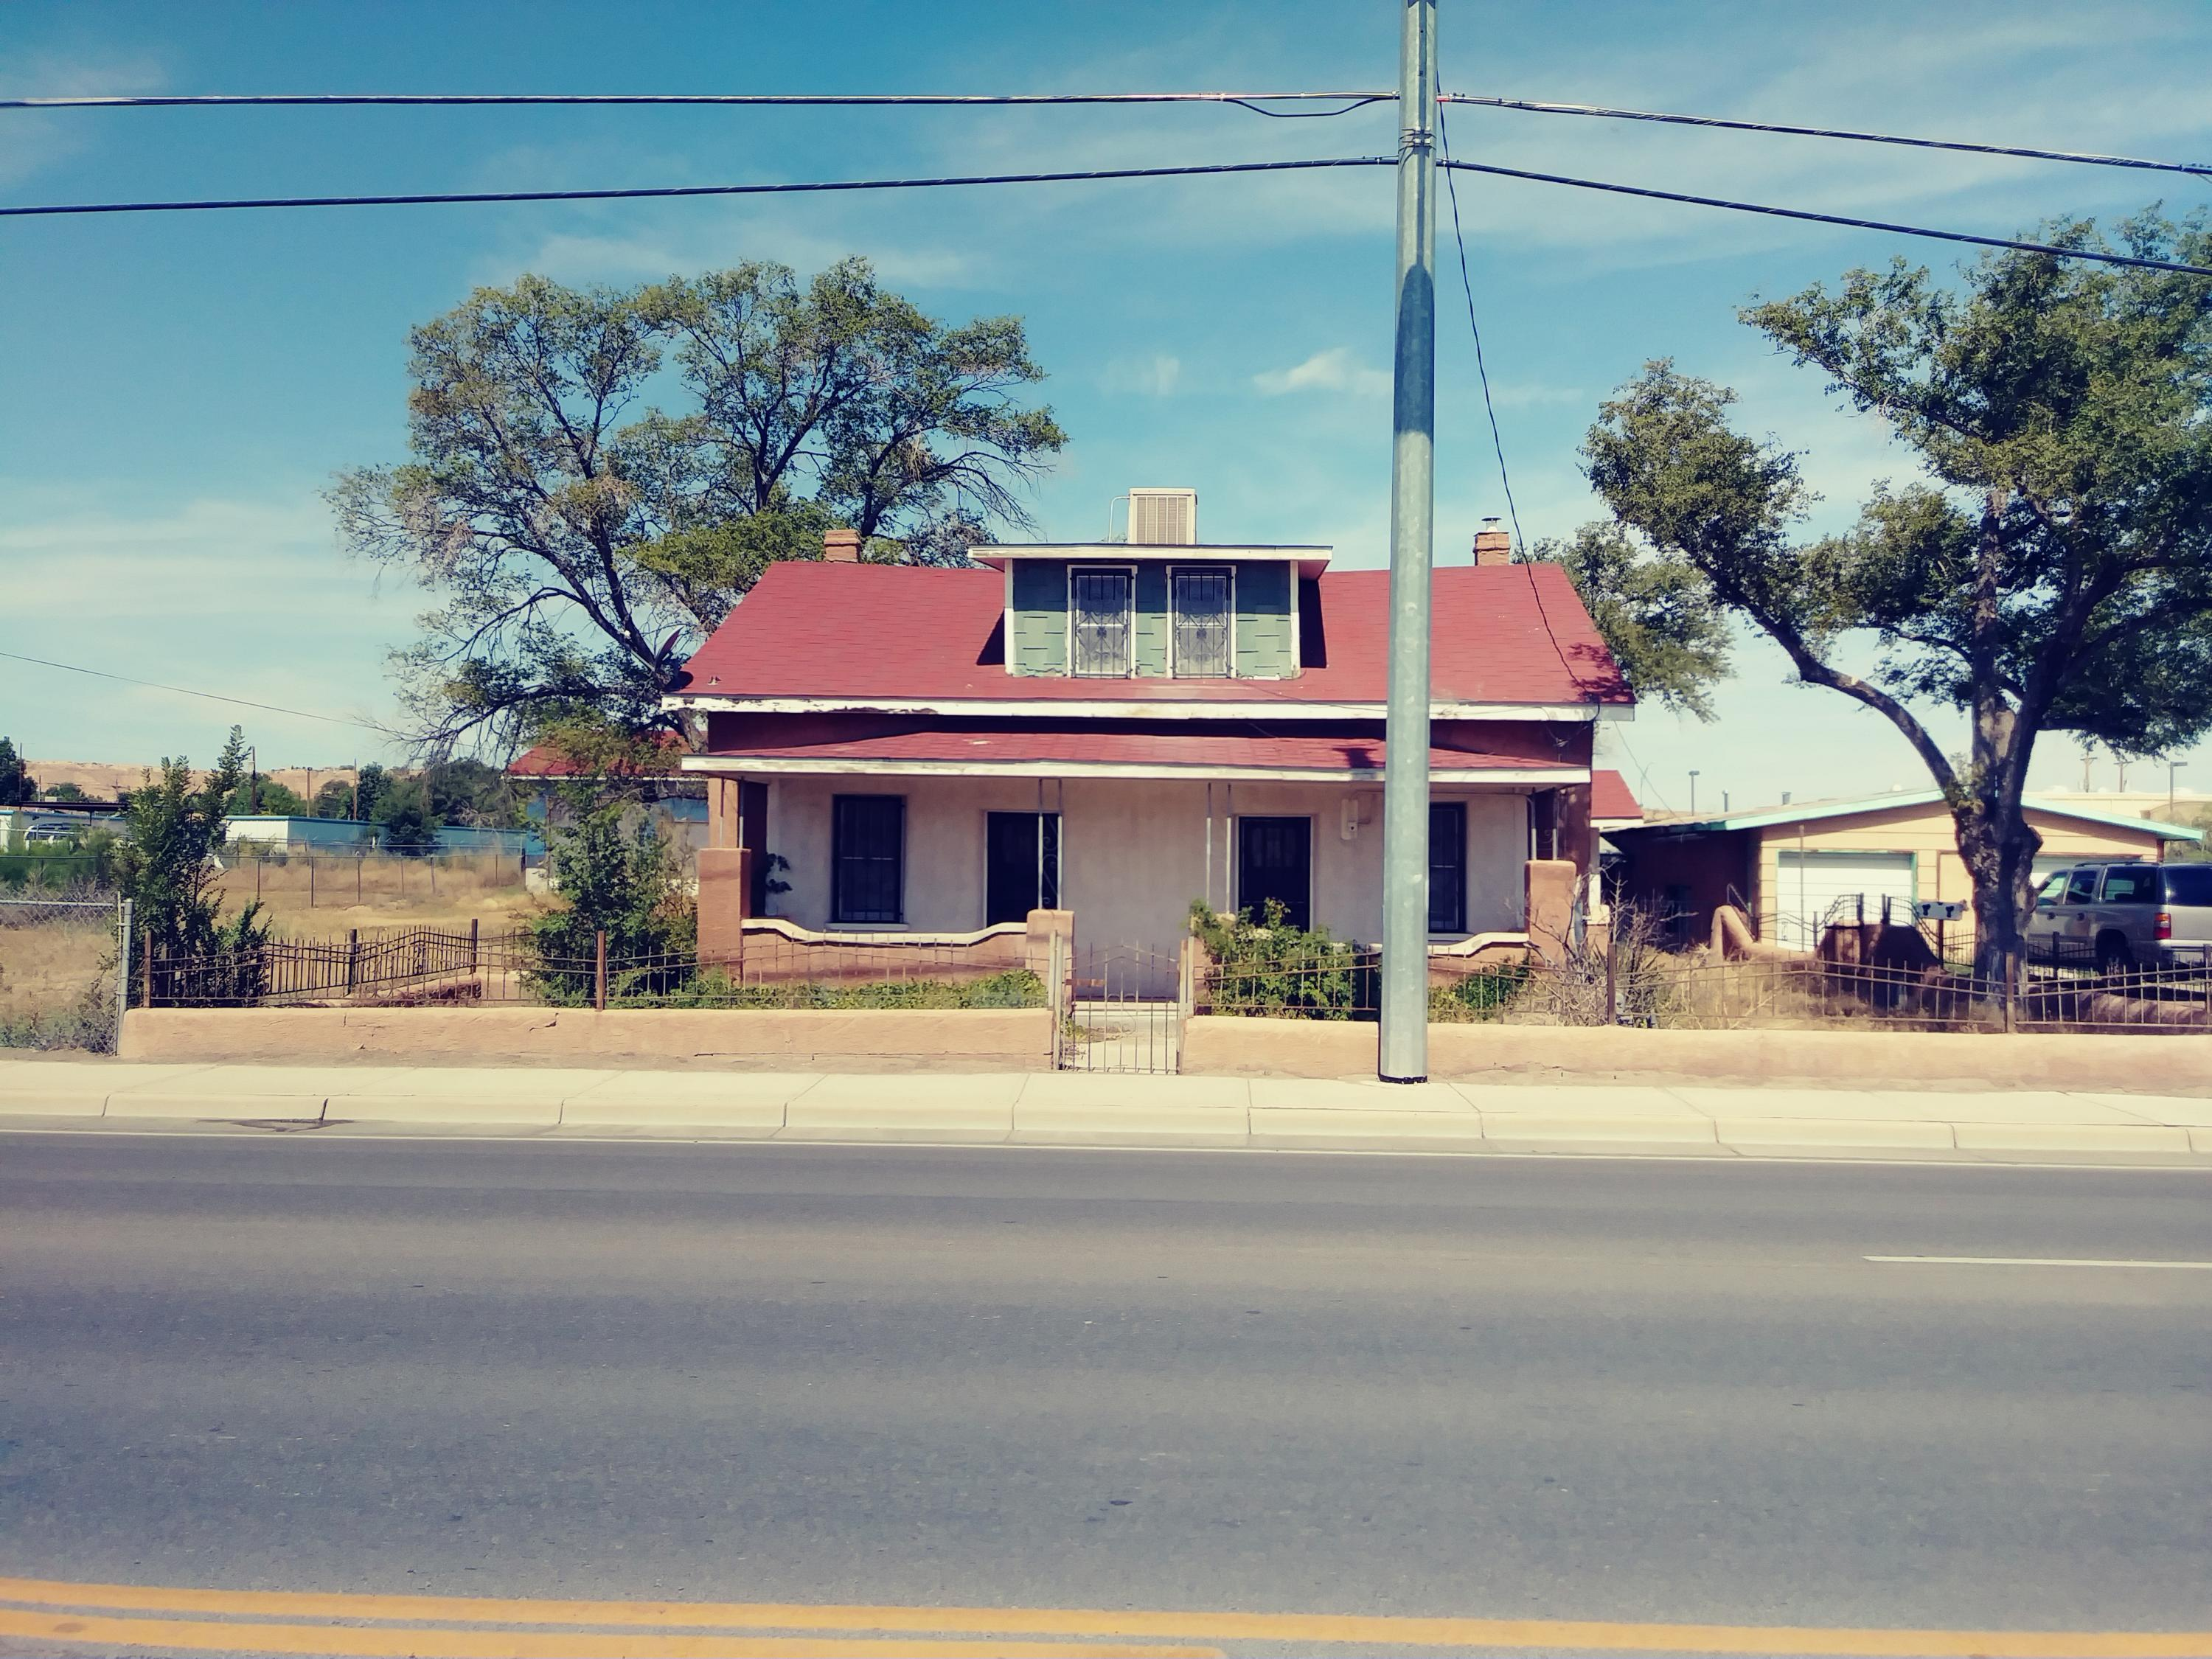 807 S Main Street, Belen NM 87002 - Photo 1